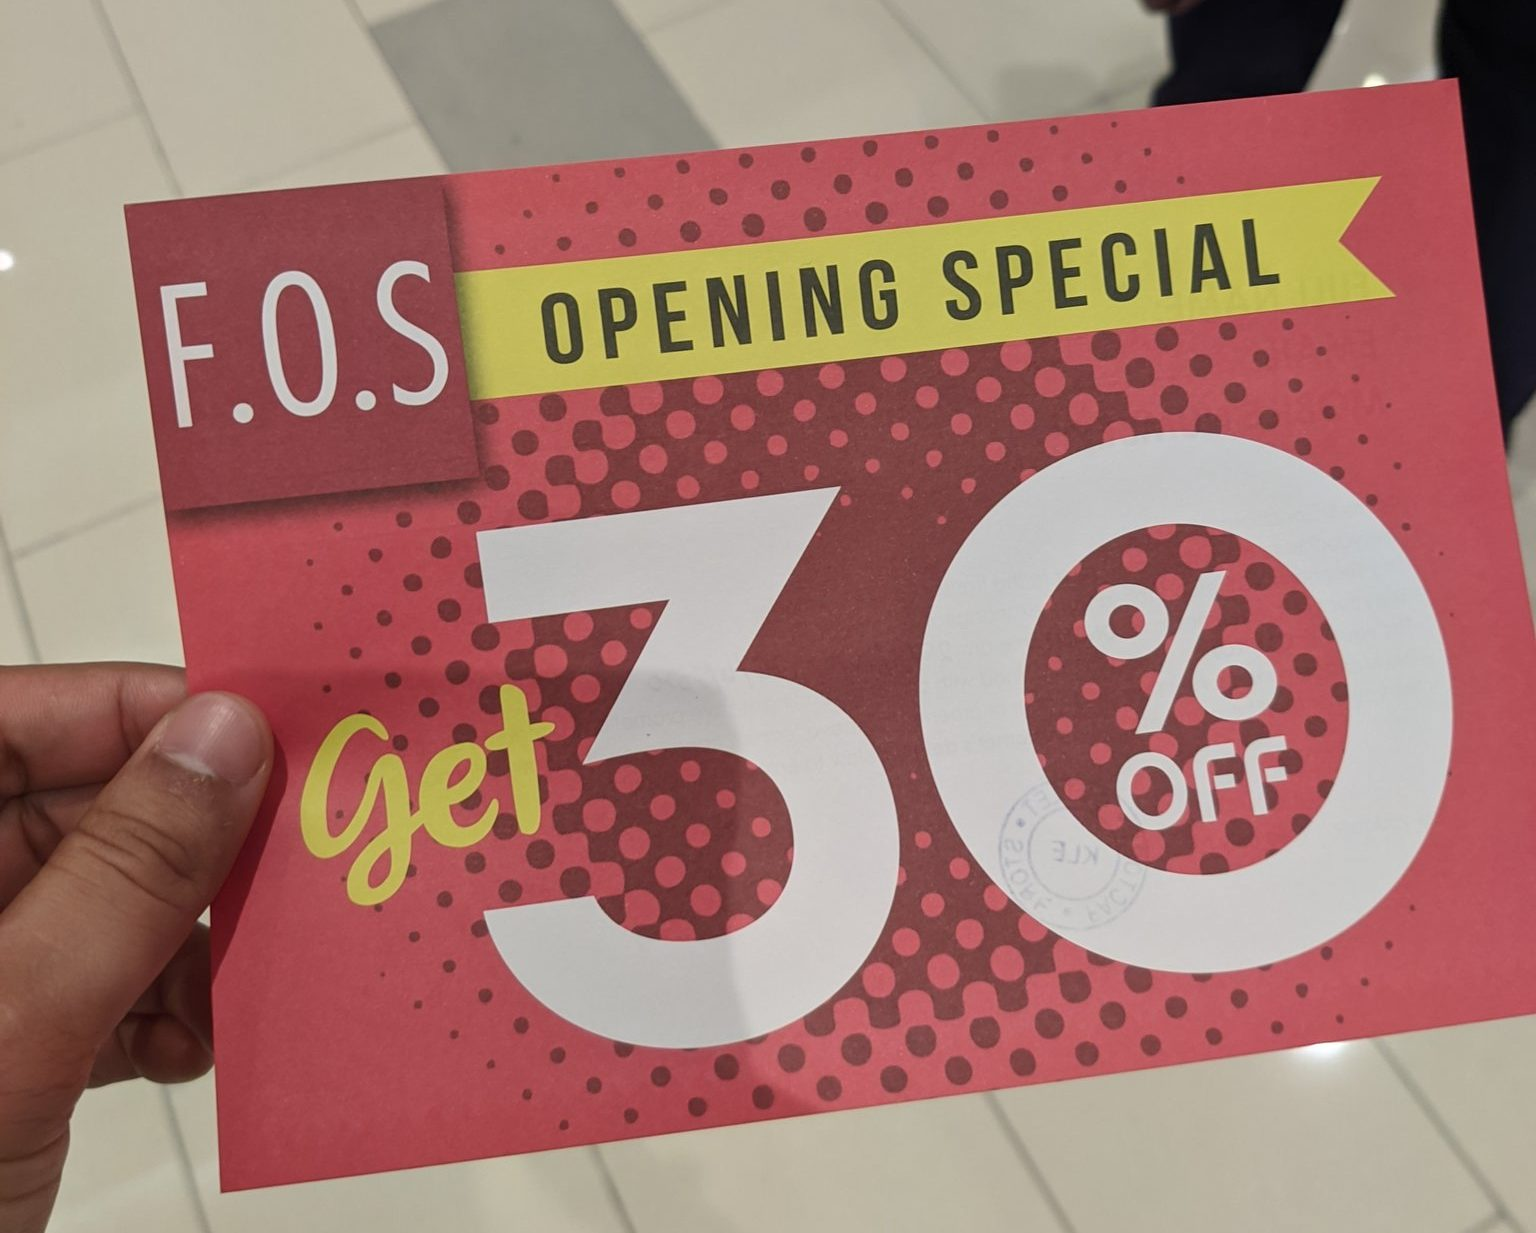 KL East Mall - FOS opening promo